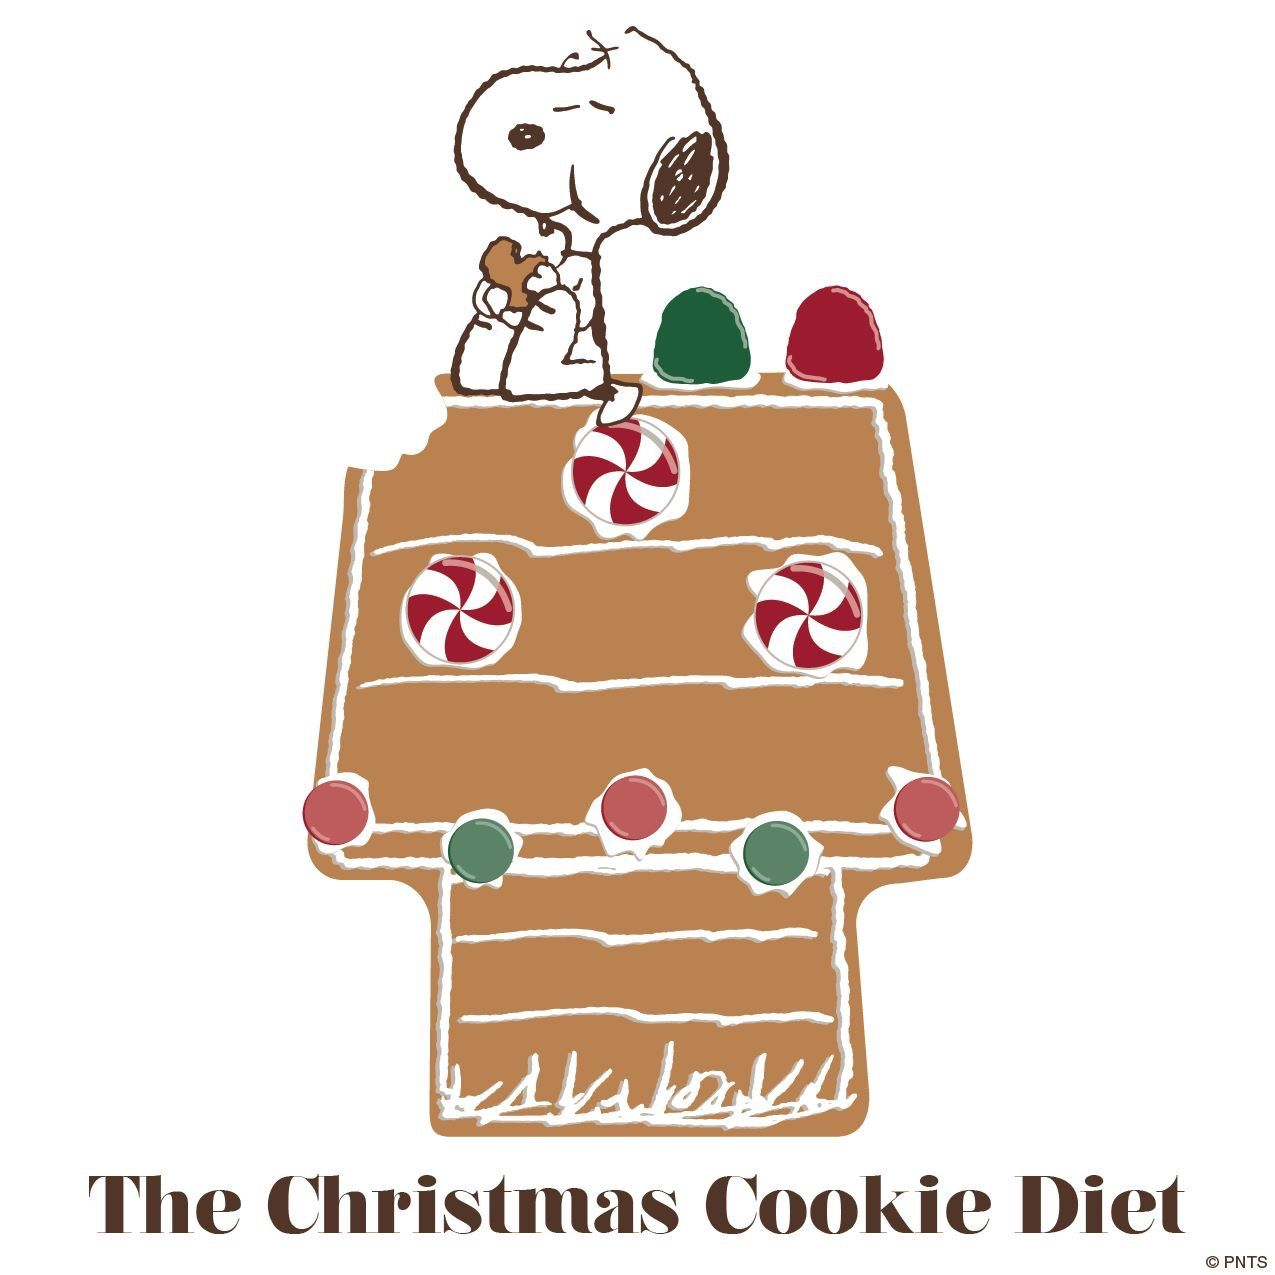 The Christmas Cookiet